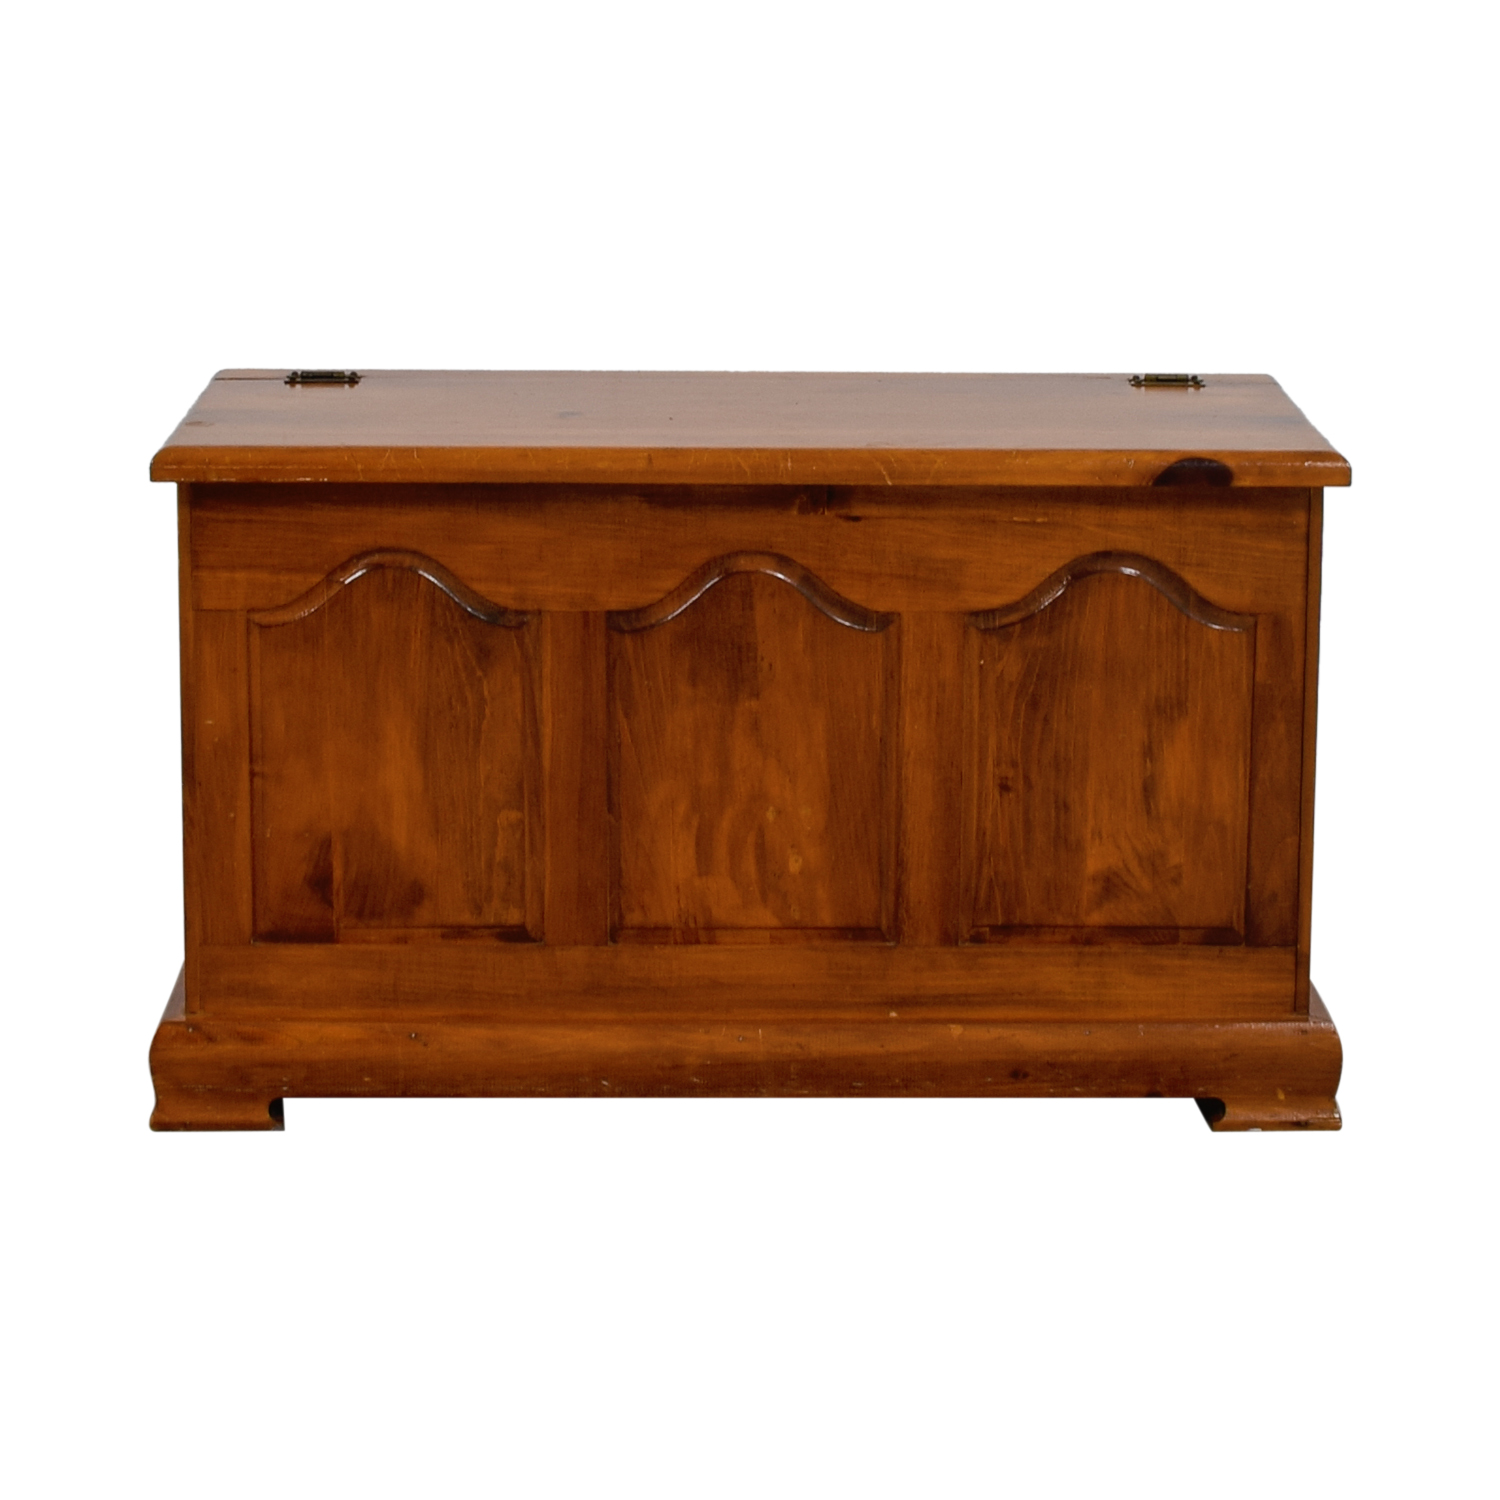 Shop Vintage Wooden Chest Online ...